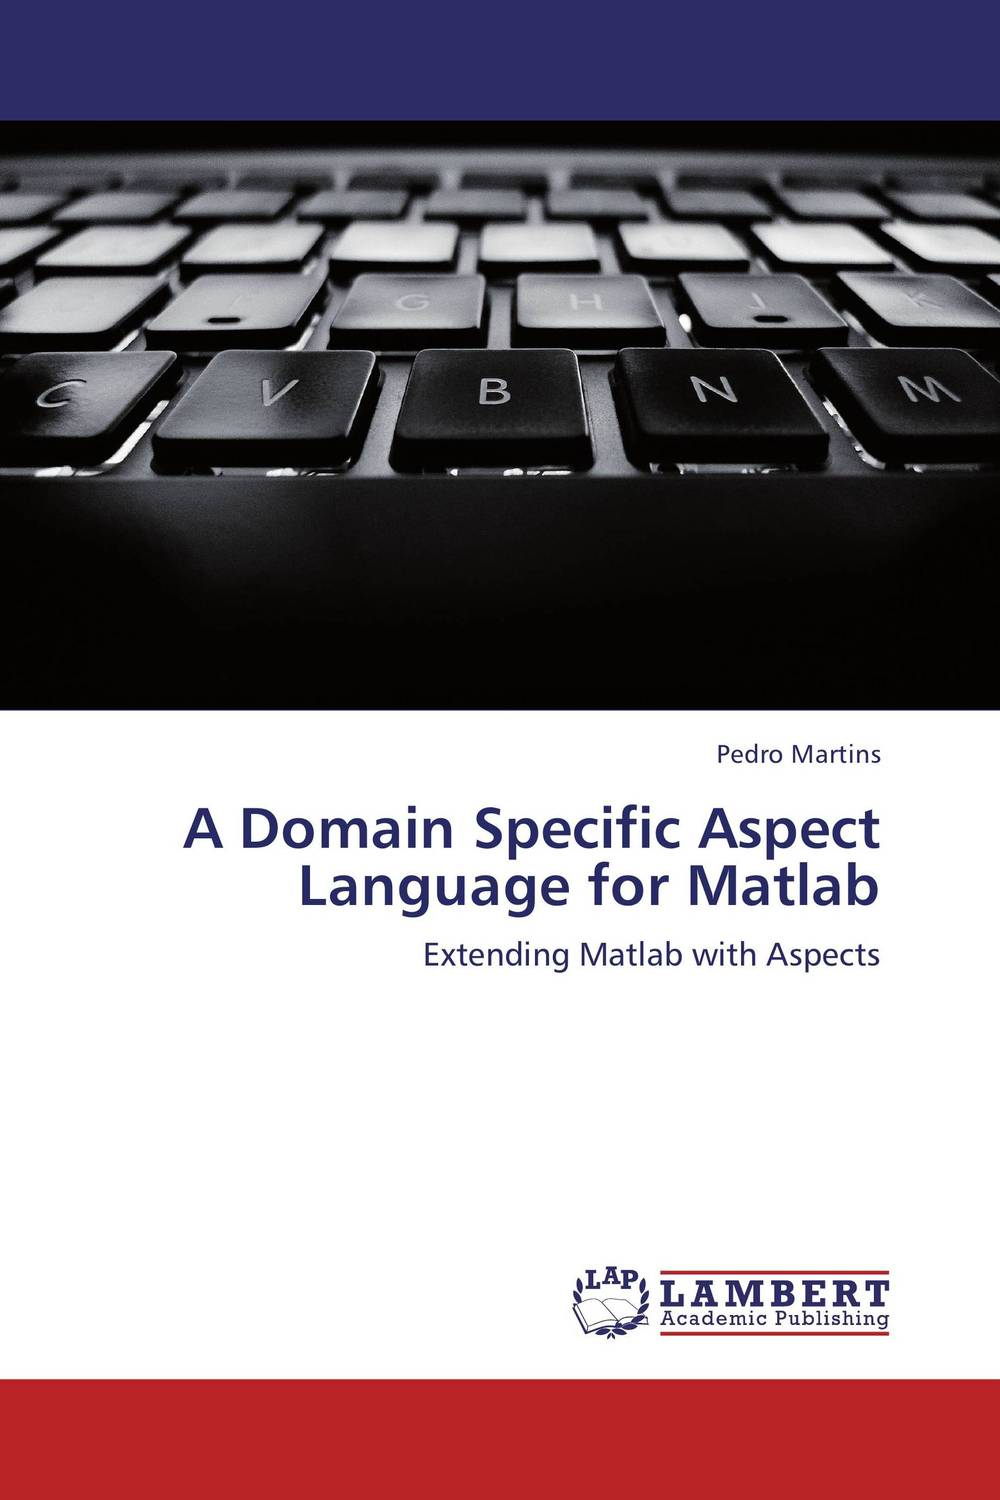 A Domain Specific Aspect Language for Matlab paul barshop capital projects what every executive needs to know to avoid costly mistakes and make major investments pay off